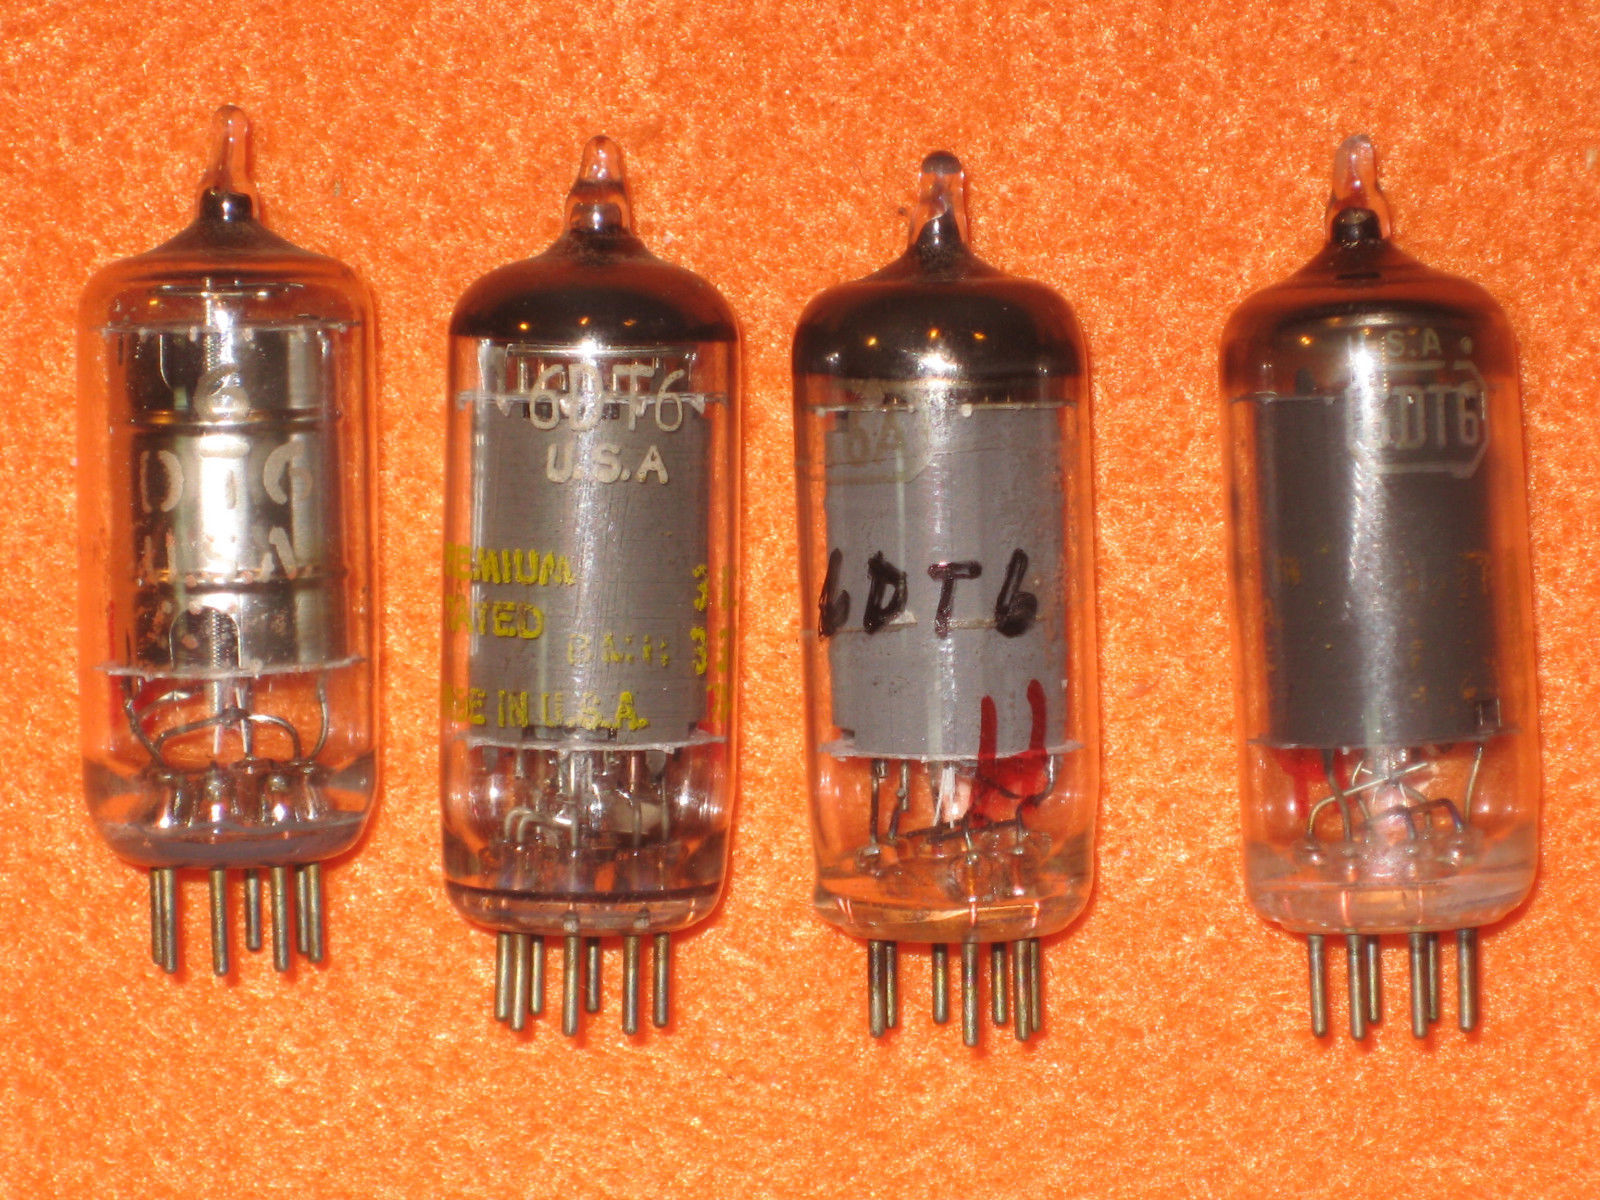 Vintage Radio Vacuum Tube (one): 6DT6 - Tested Good